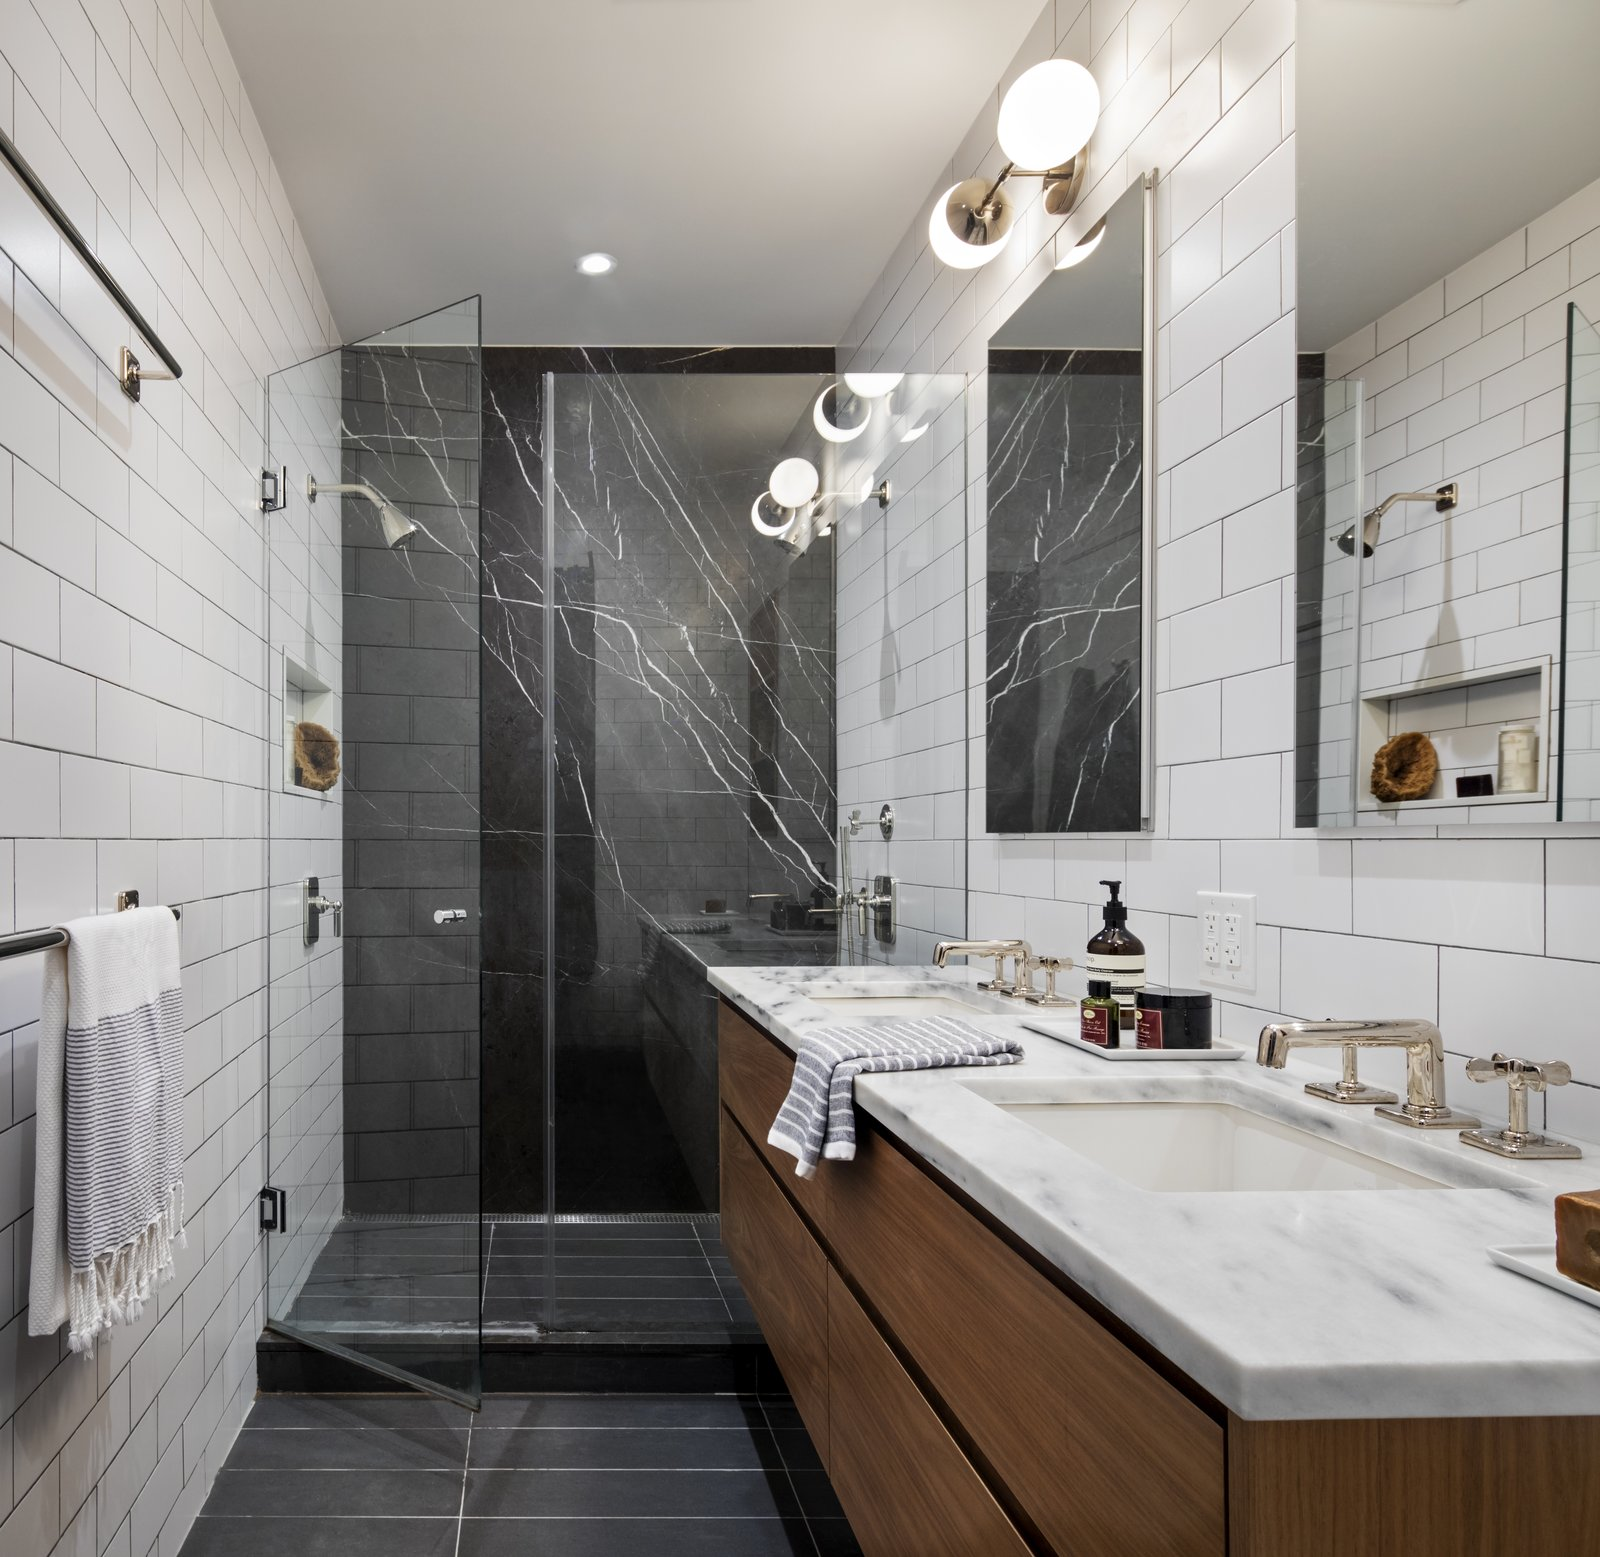 BFDO Architects Crown Heights Brownstone bathroom